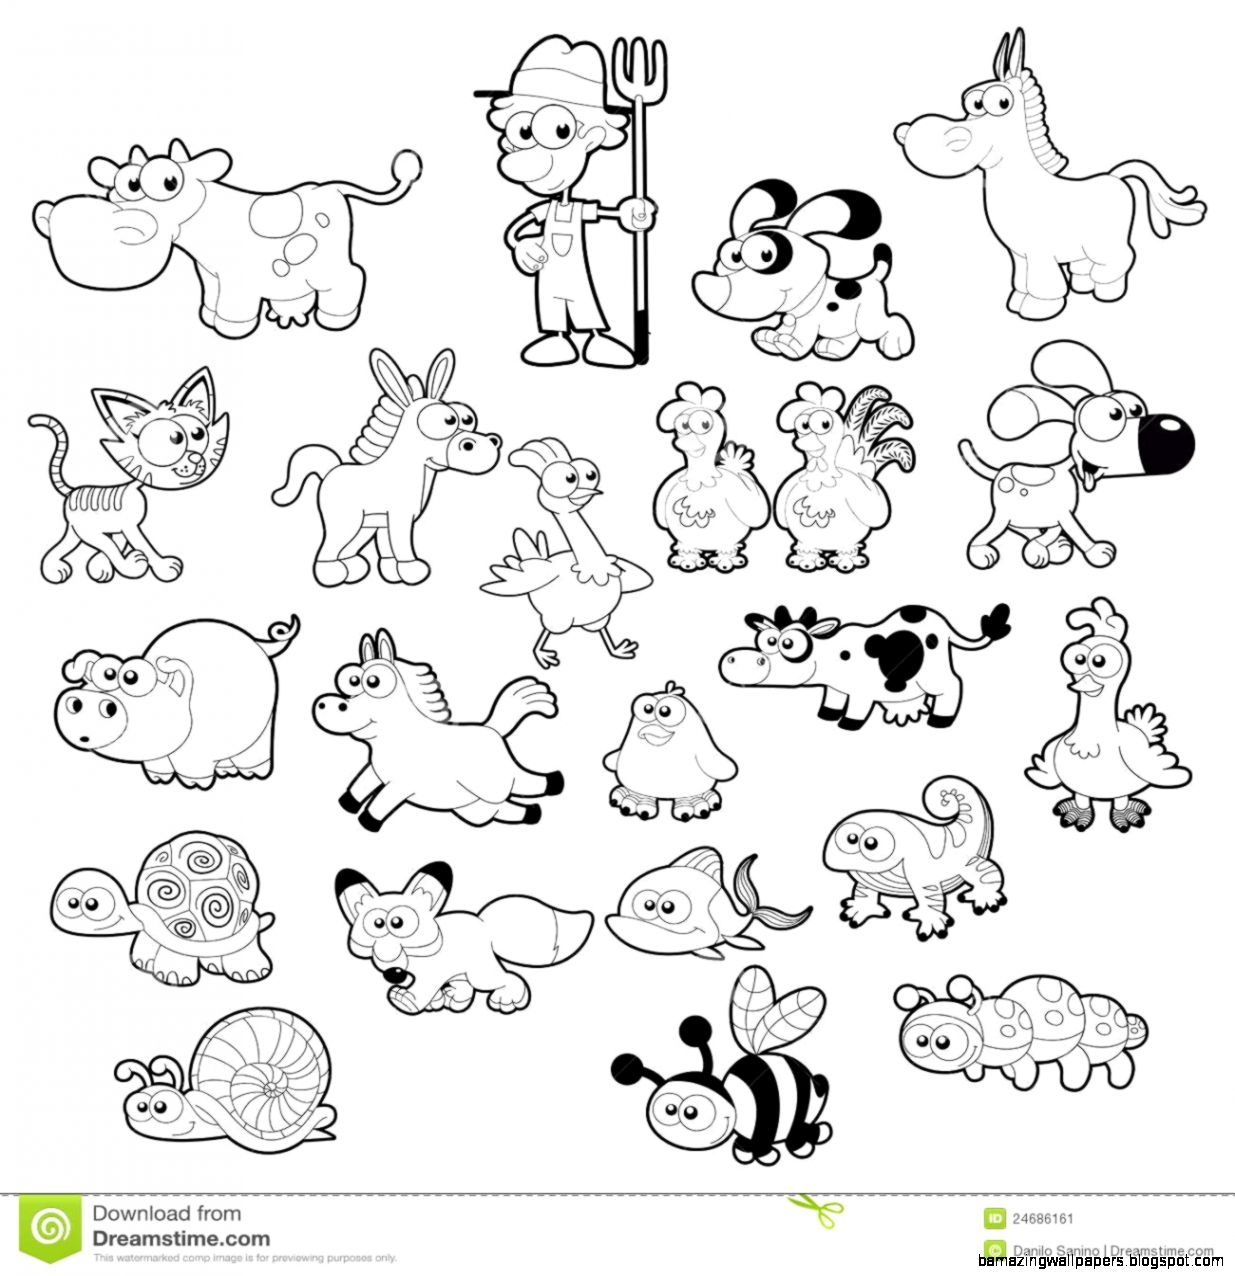 free download Free animals download . Forest animal clipart black and white